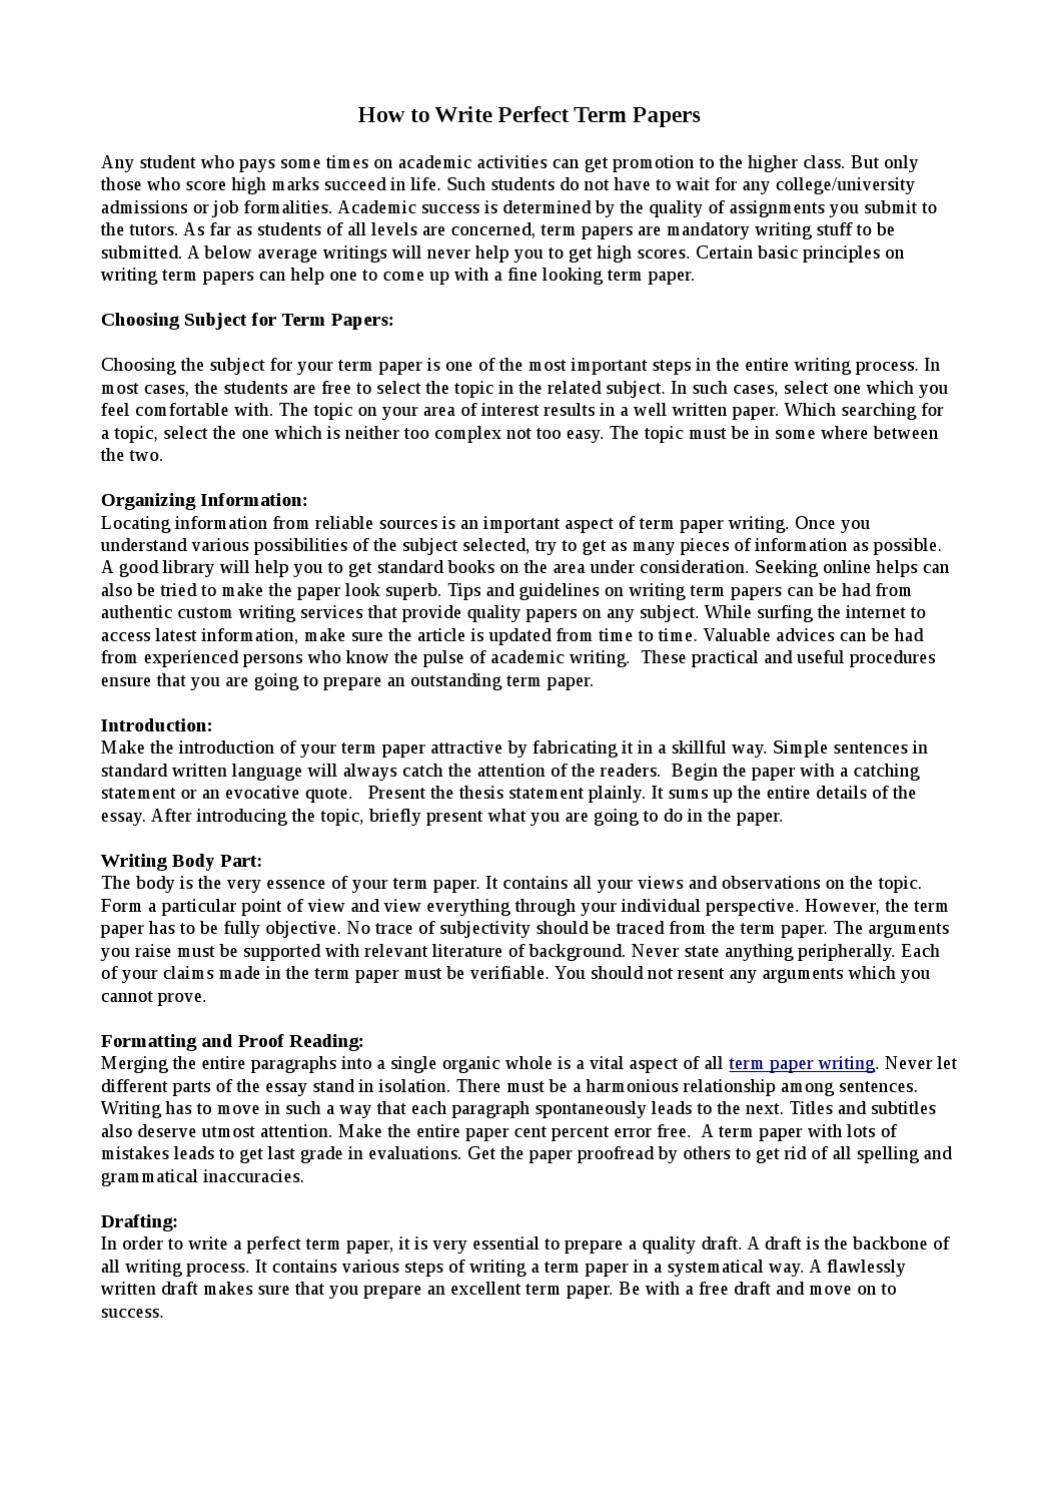 empathy essay Essay about empathy empathy empathy empathy is described in webster's dictionary as, the action of understanding, being aware of, being sensitive to, and vicariously experiencing the feelings, thoughts, and experience of another of either the past or present without having the feelings, thoughts, and experience fully communicated in an.